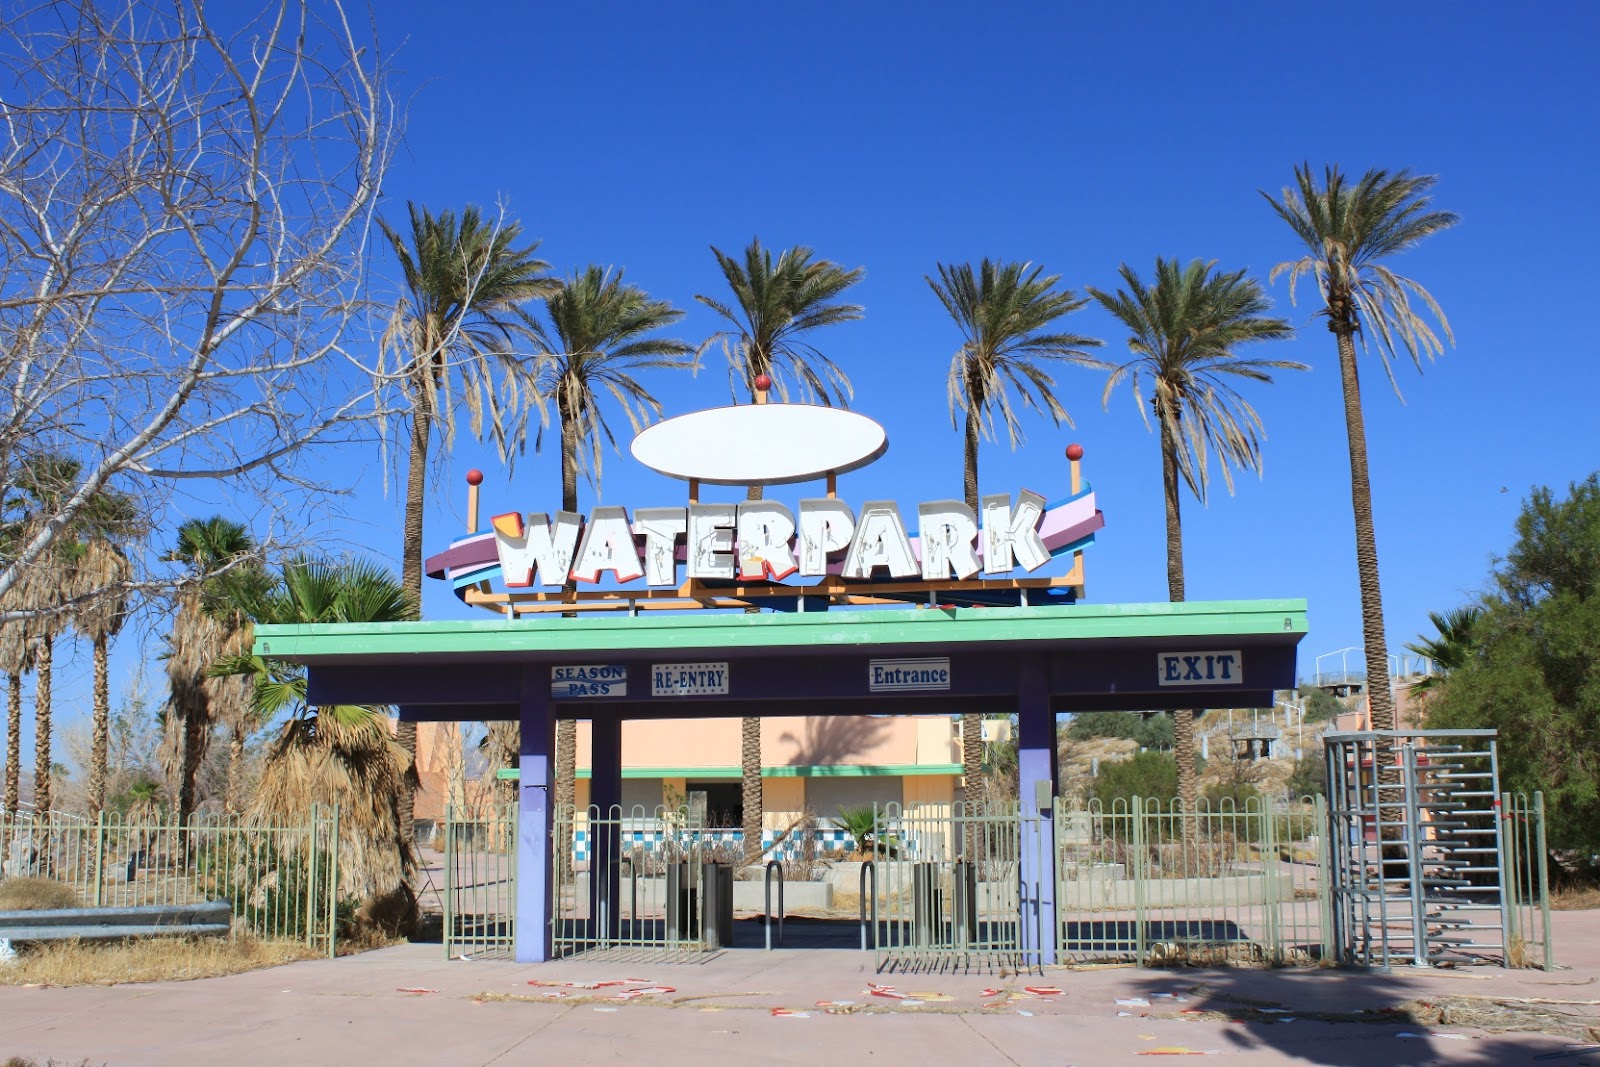 waterpark trip essay There's so much to discover at valleyfair come visit the greatest amusement park in minneapolis, valleyfair, for adventure and excitement today.